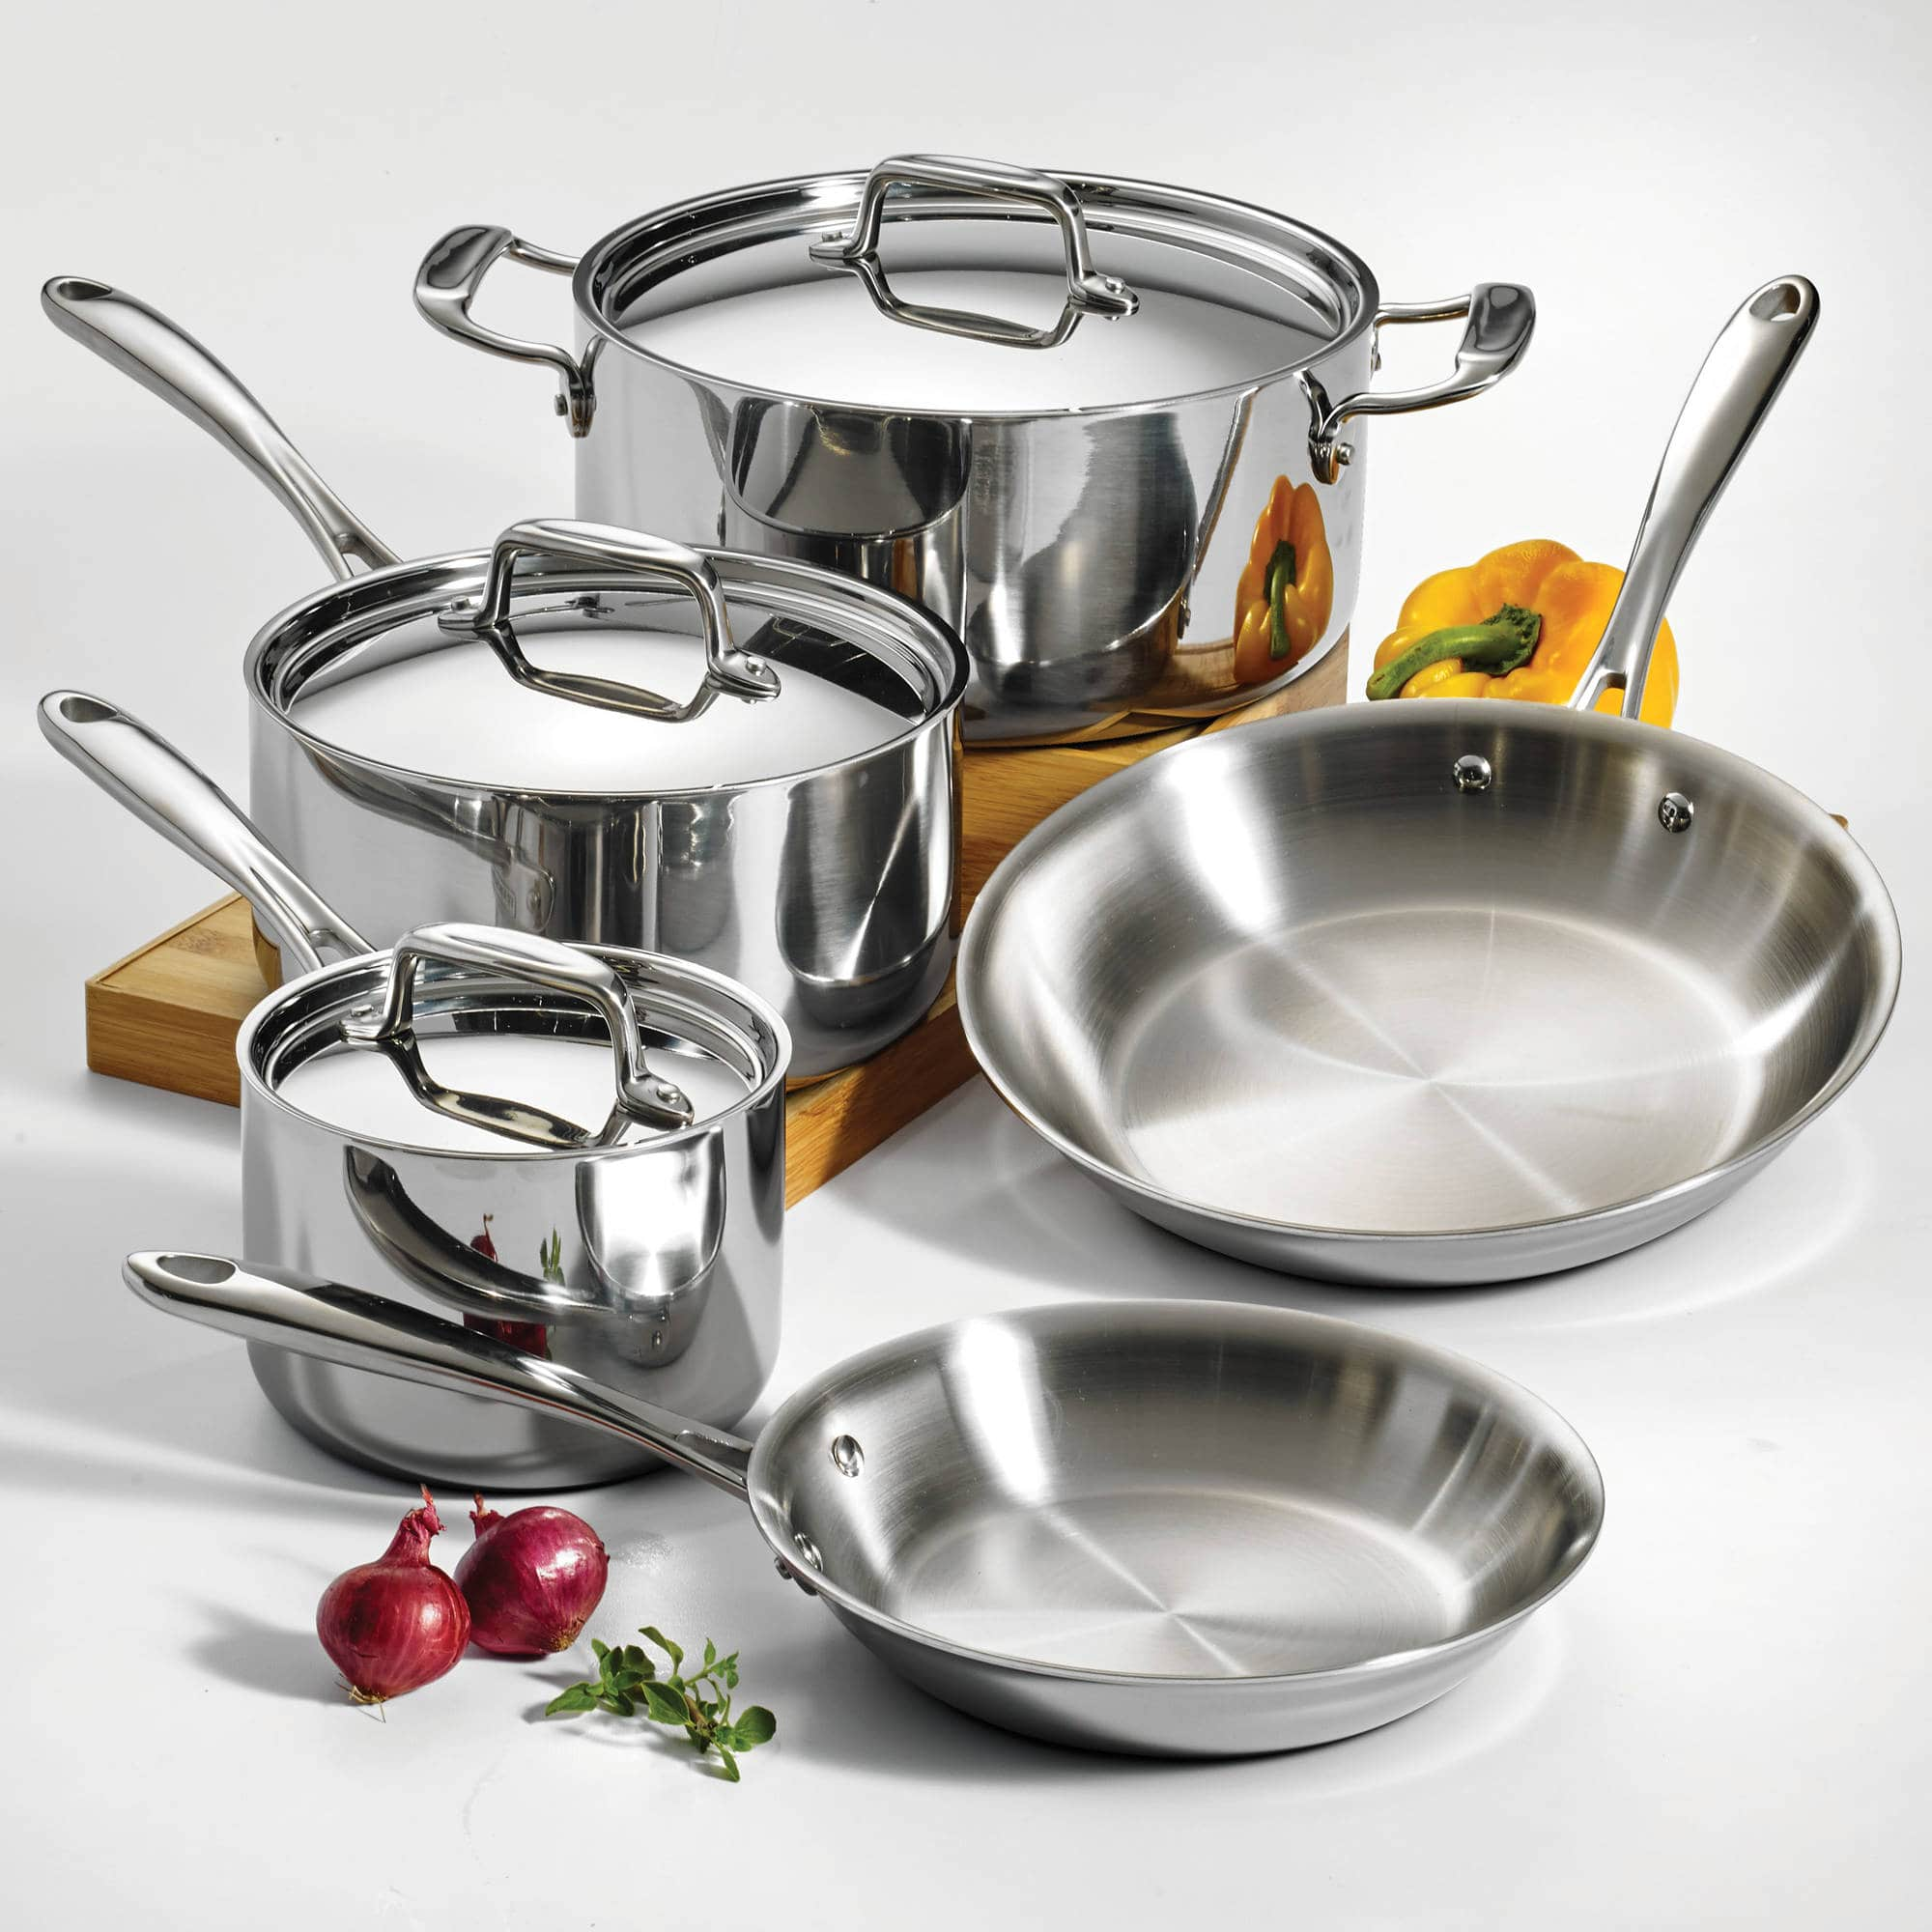 8-Piece Tramontina 18/10 Stainless Steel Tri-Ply Full Clad Cookware Set $109.97